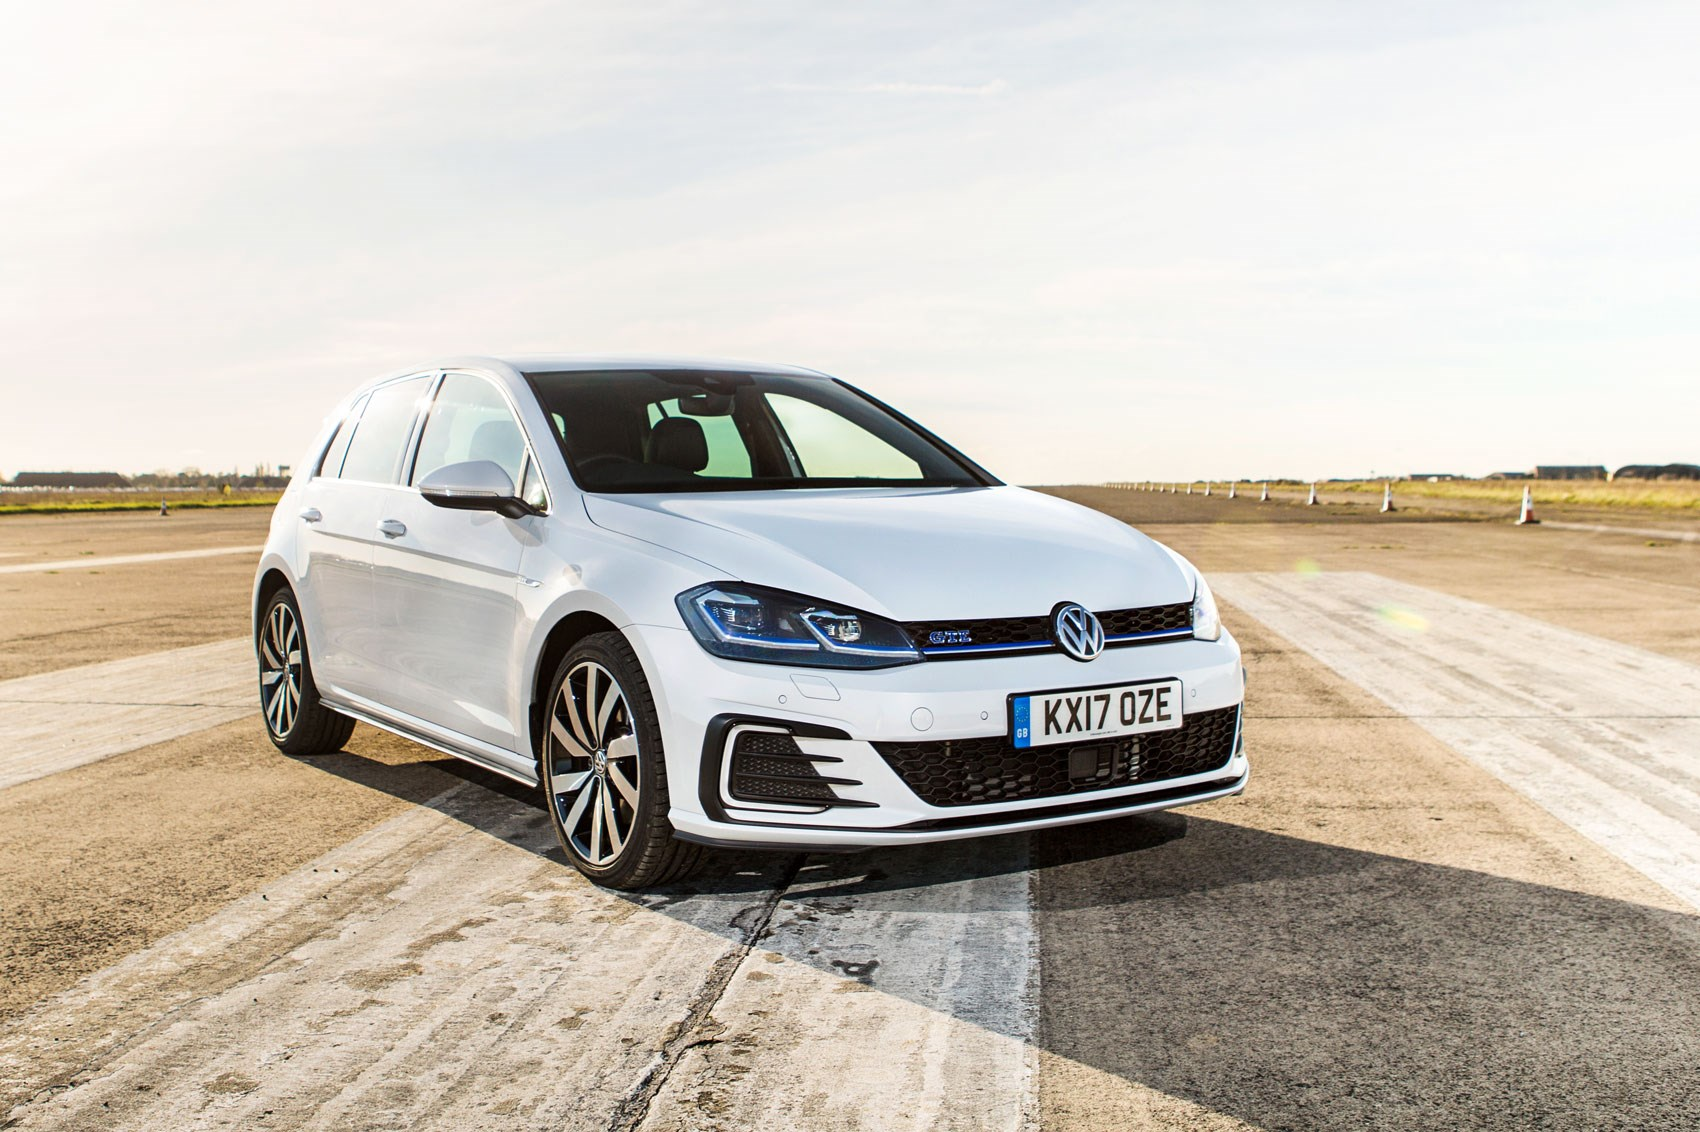 vw golf gte 2018 long term review the 6 month verdict car magazine. Black Bedroom Furniture Sets. Home Design Ideas